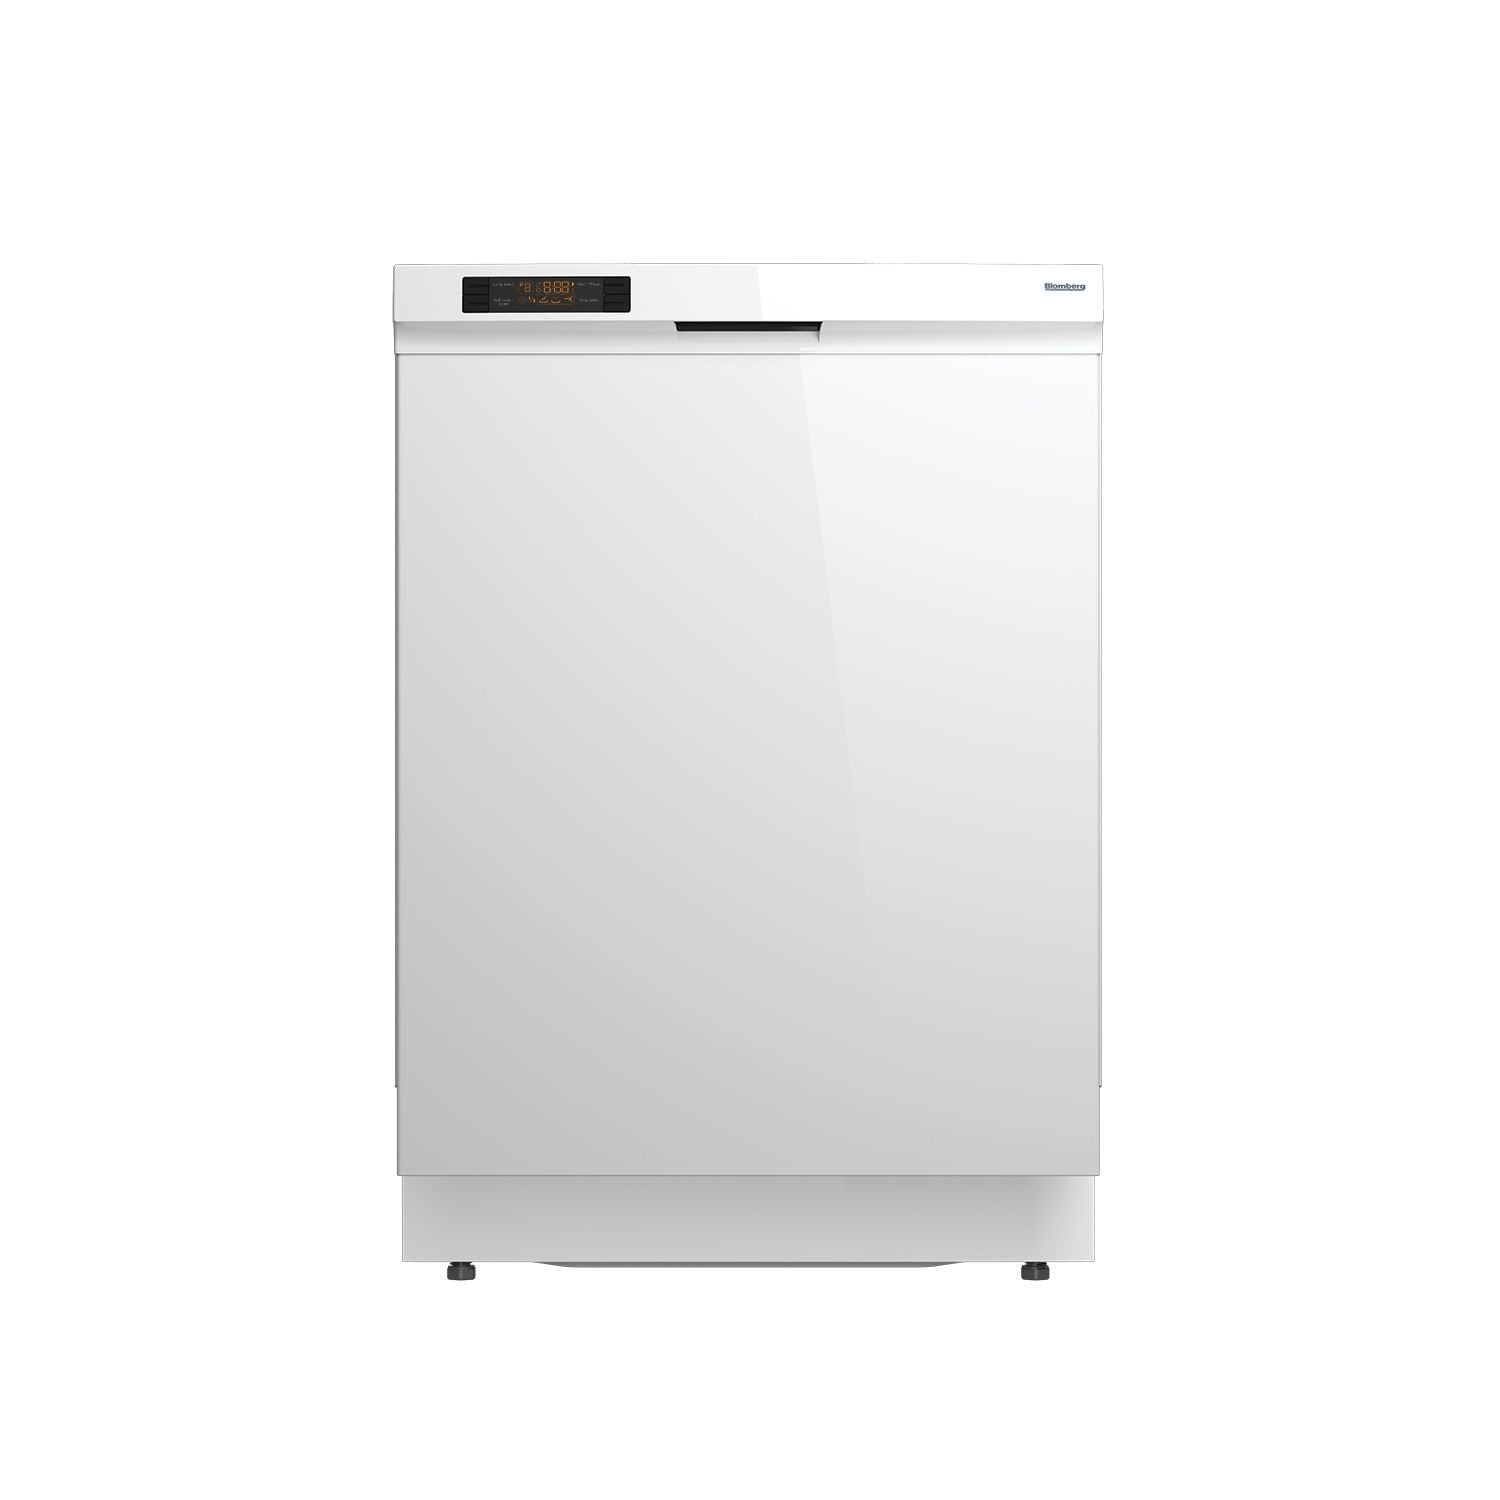 """Blomberg 24"""" White Tall Tub with Thin Panel Front Control..."""